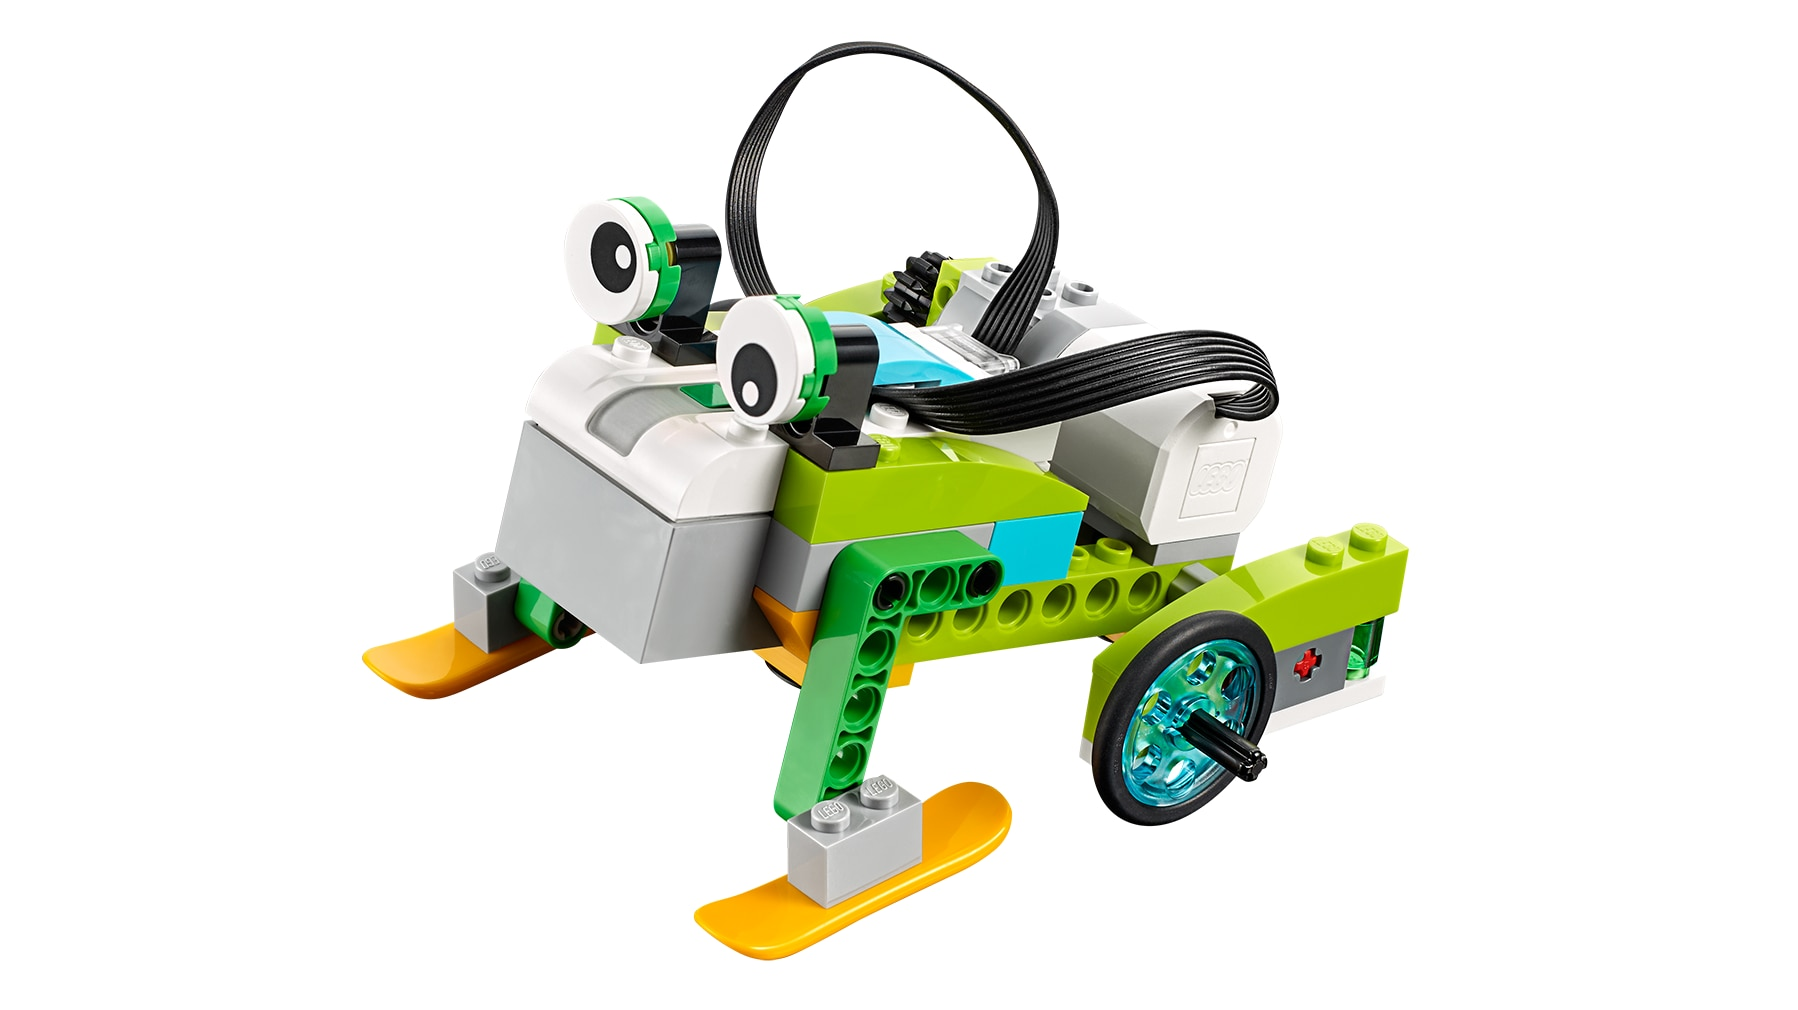 LEGO Education WeDo 2.0 Frog model from the Frog's Metamorphosis lesson plan